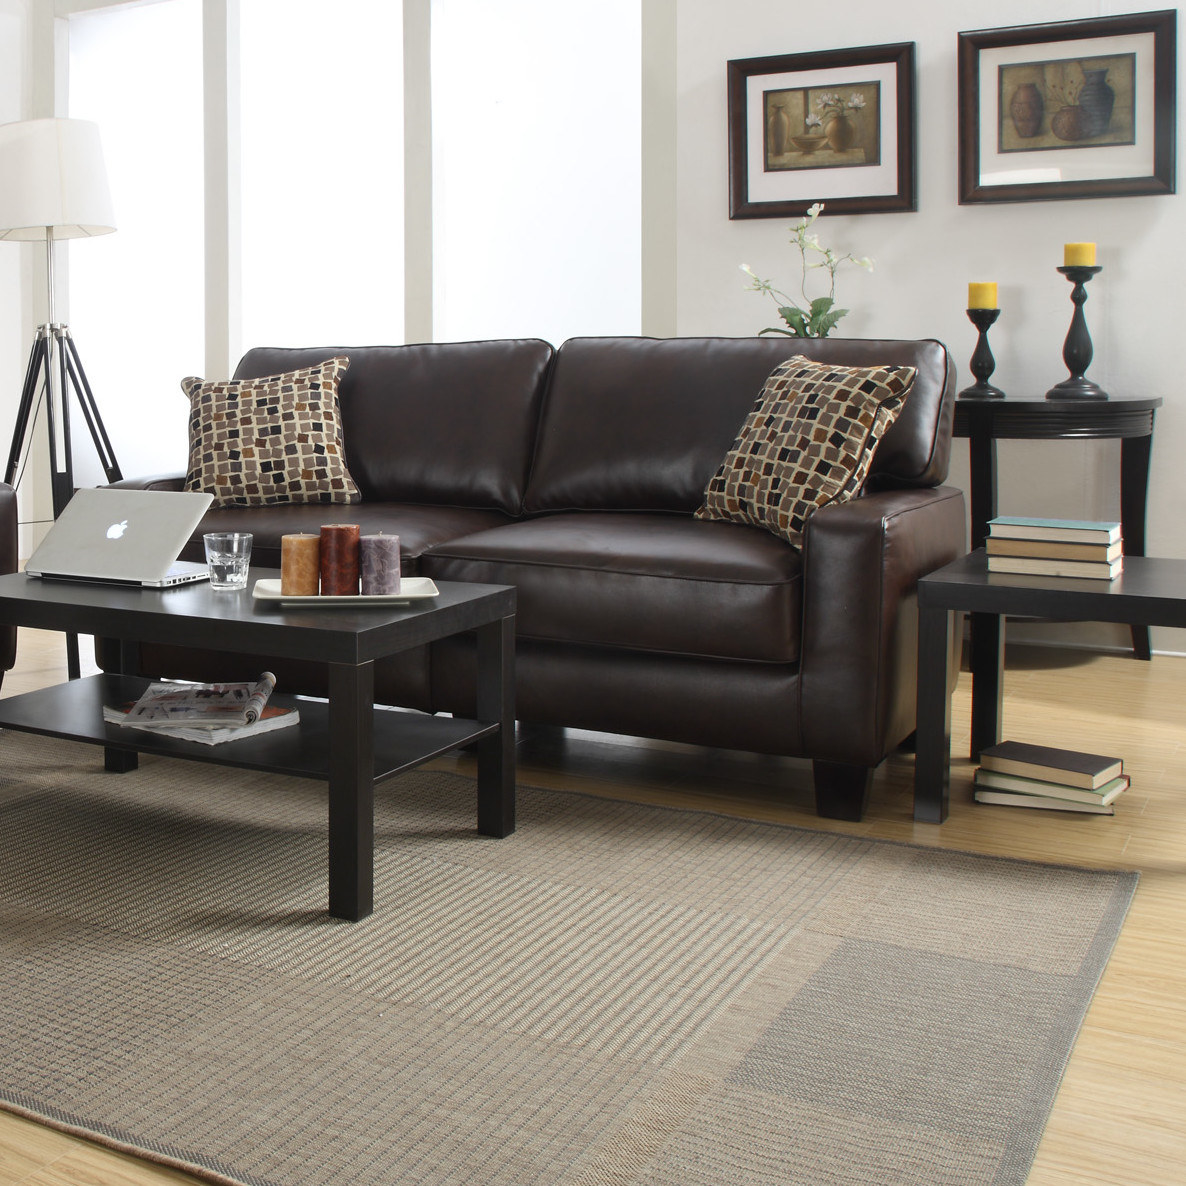 a leather sofa designed with clumsy people in mindaka if you spill something it wonu0027t be the end of the world